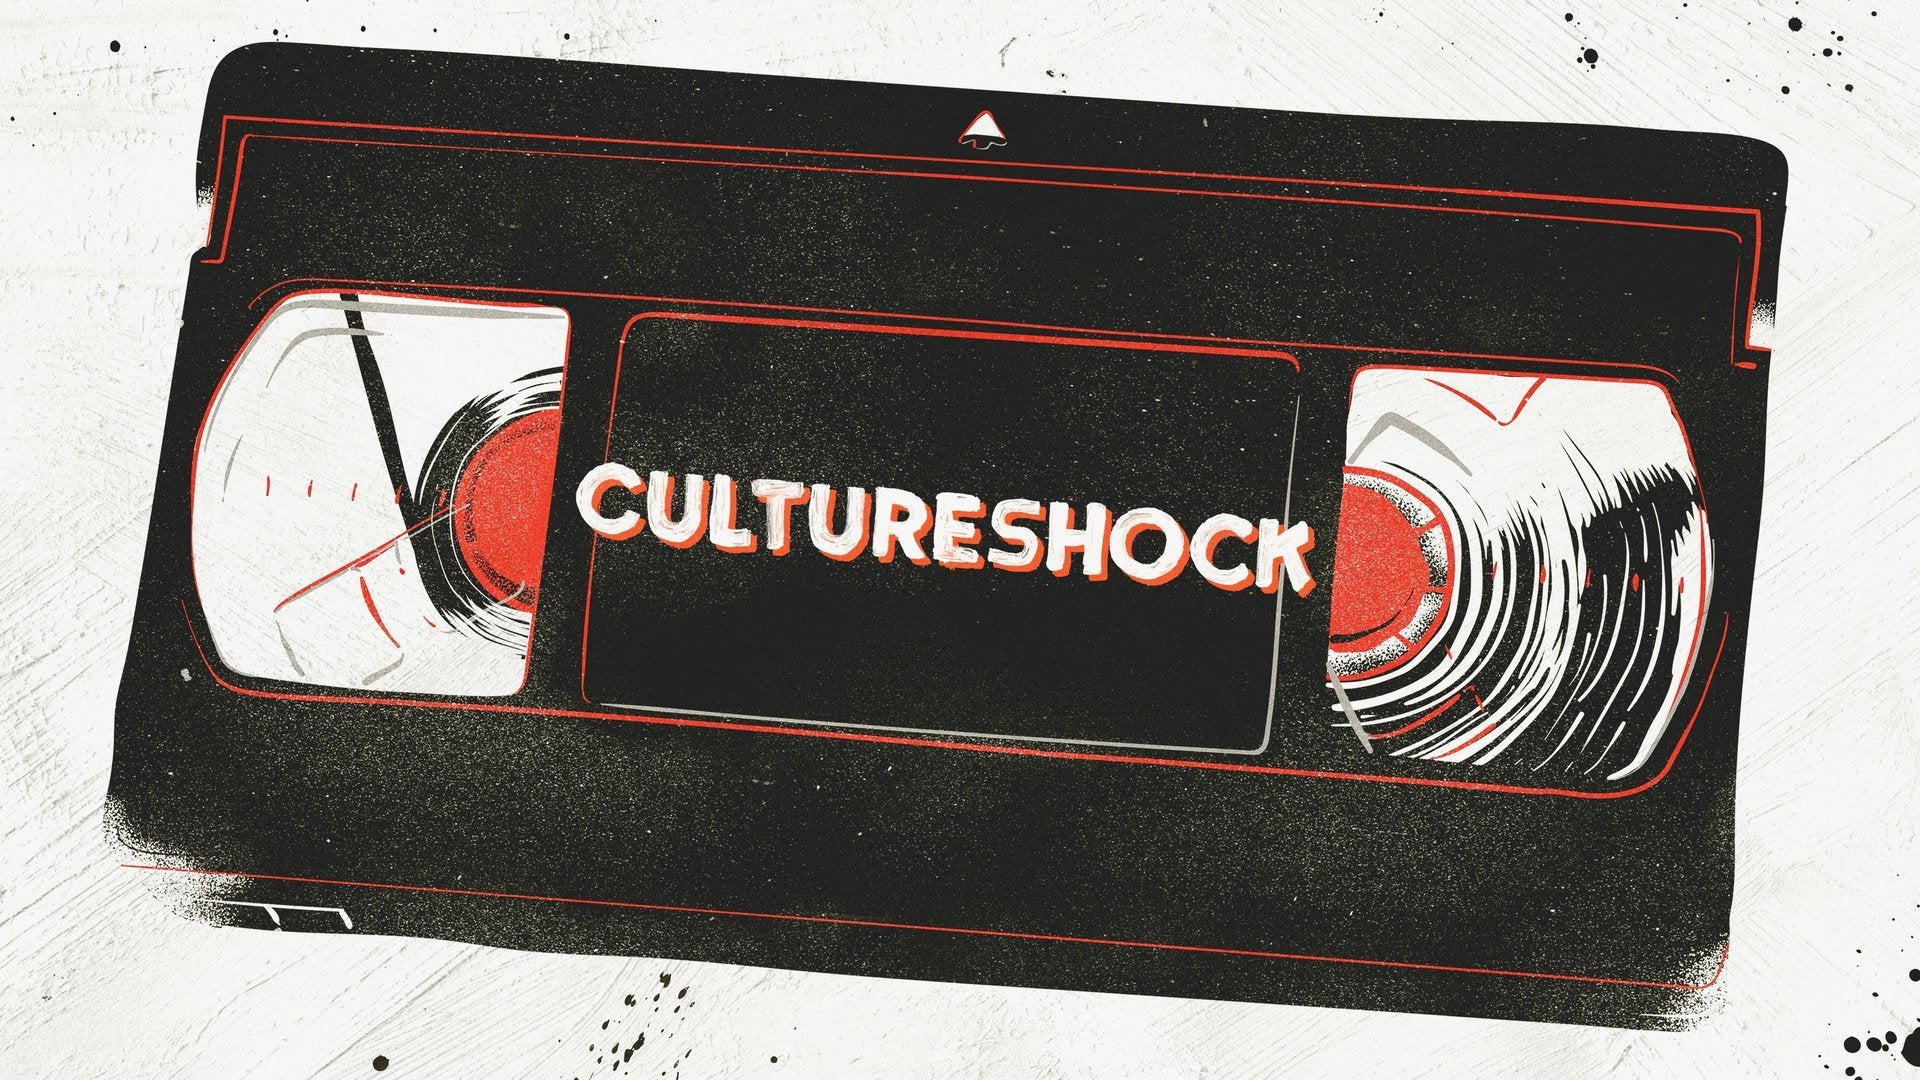 Cultureshock: The Osbournes: The Price of Reality